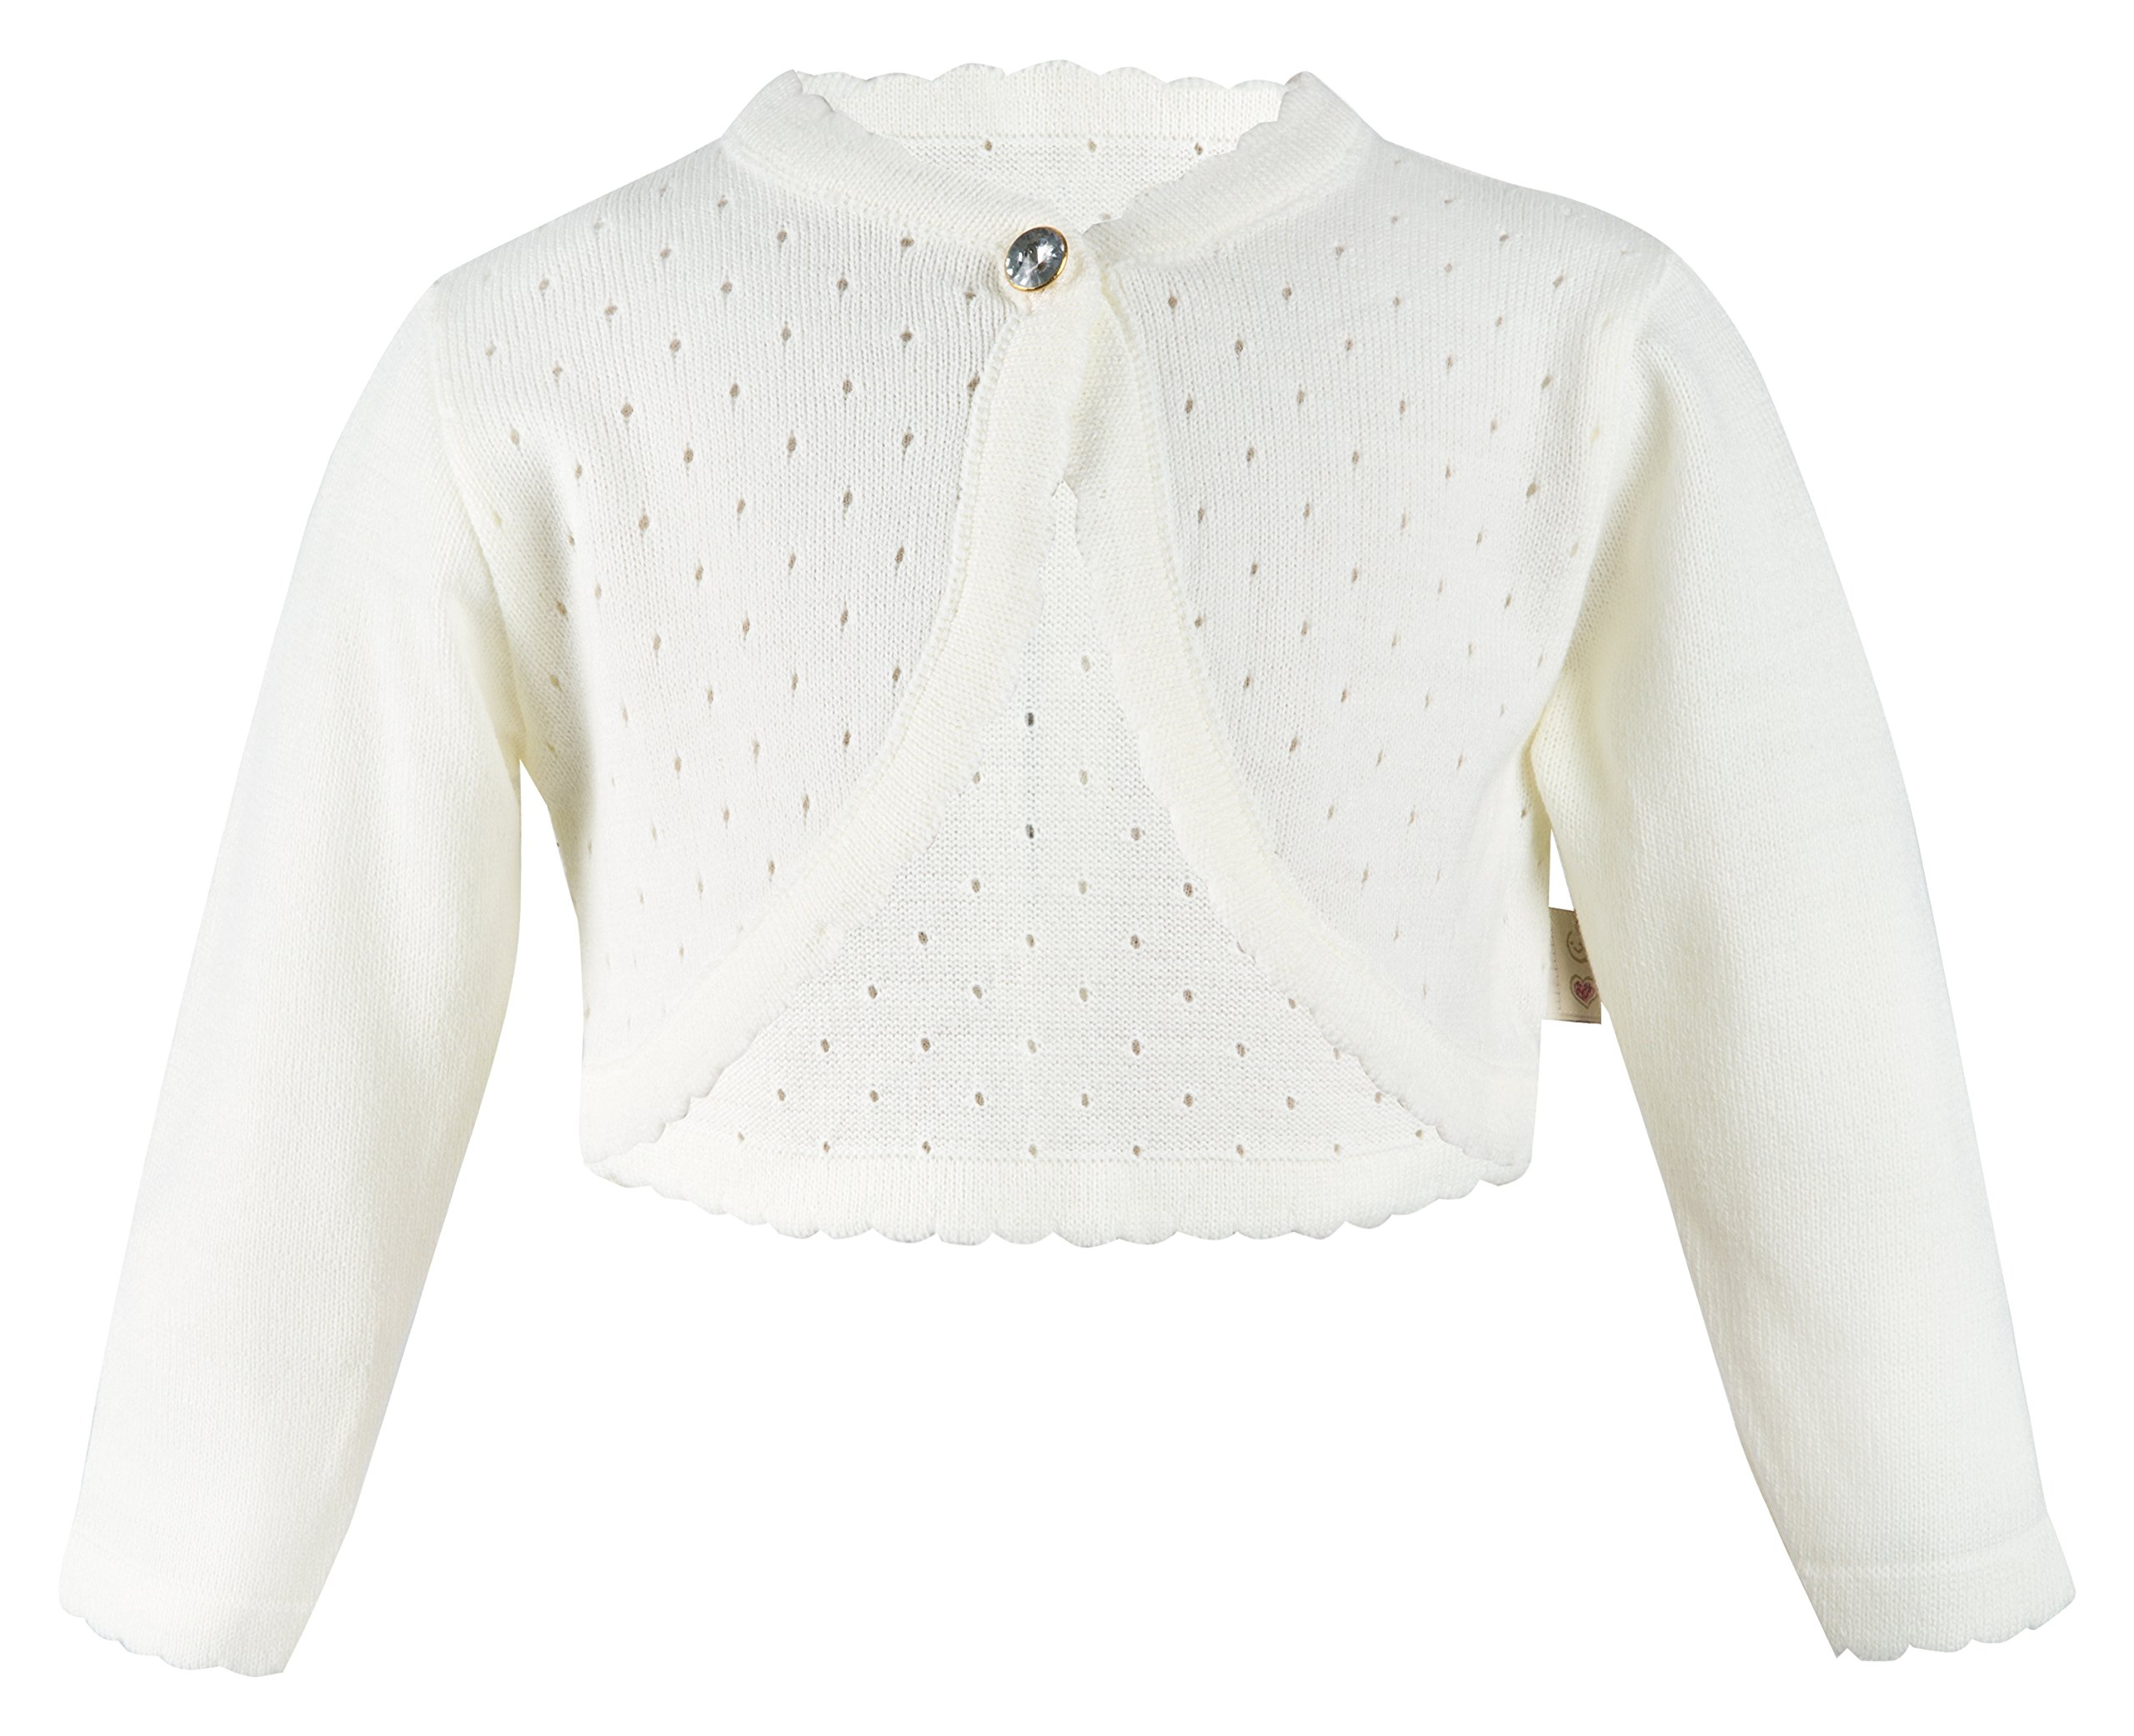 Lilax Little Girls' Knit Long Sleeve One Button Closure Bolero Shrug 9 Cream by Lilax (Image #1)